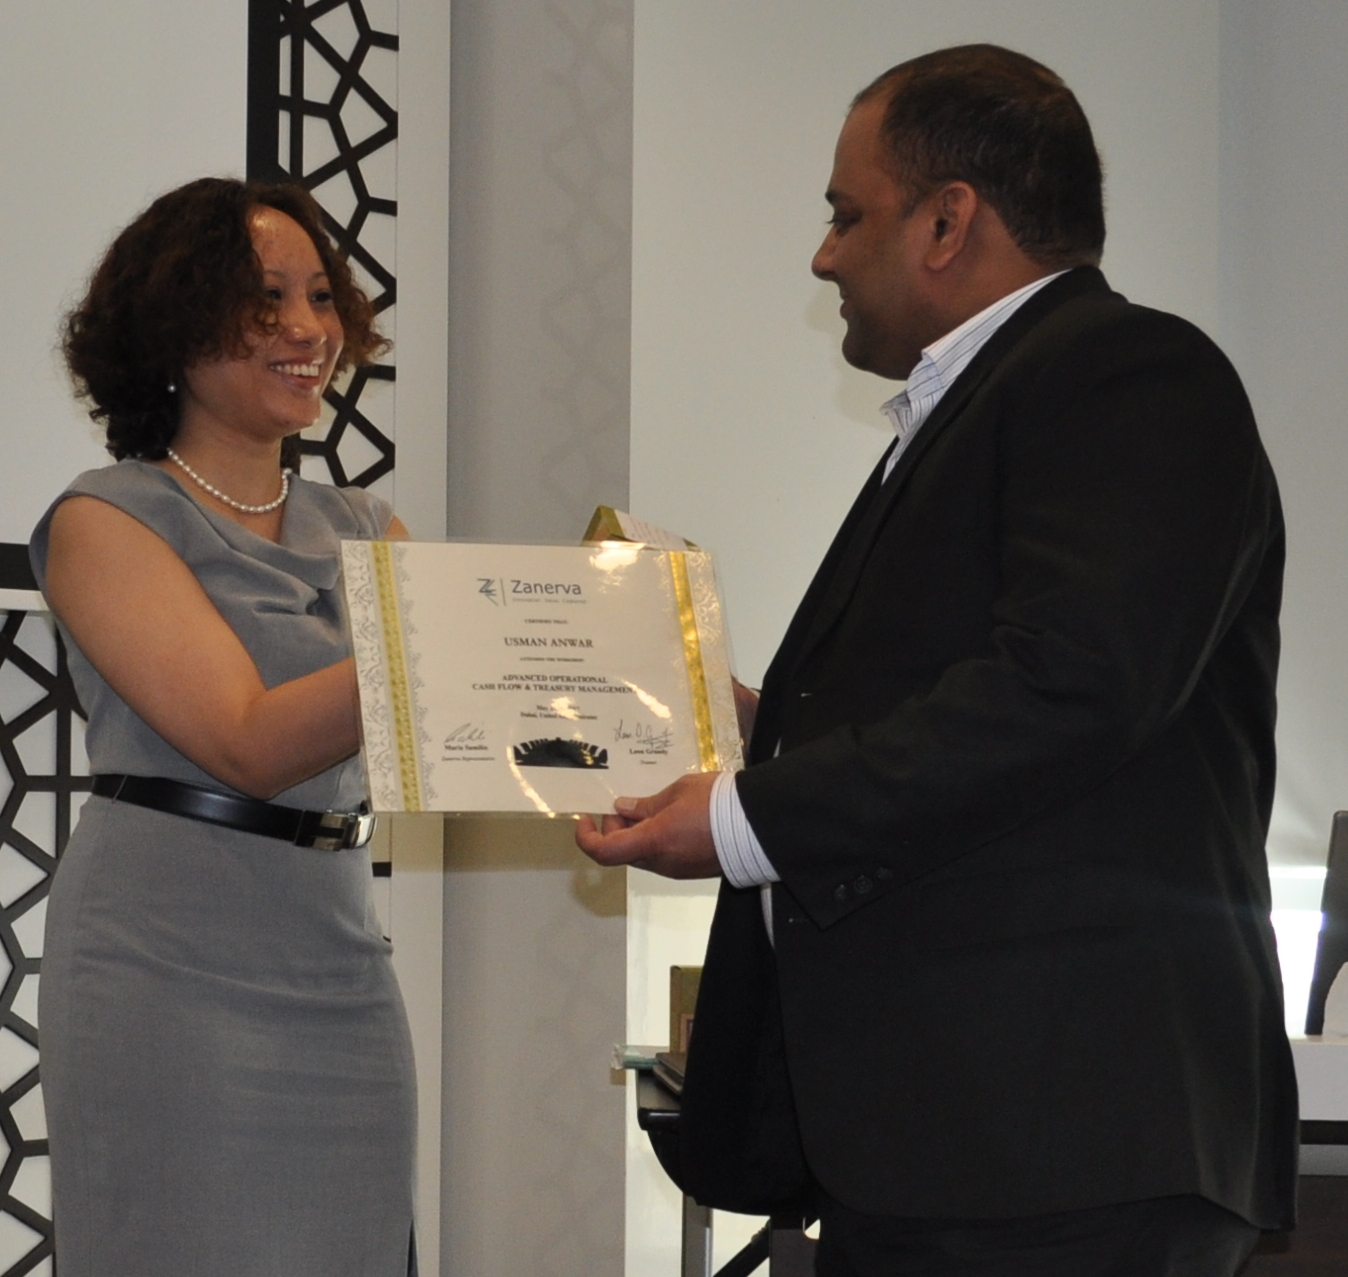 Usman Anwar (Treasury Manager)   receiving his certificate of workshop participation from  Maria Samilin (Zanerva Director of New Ideas)